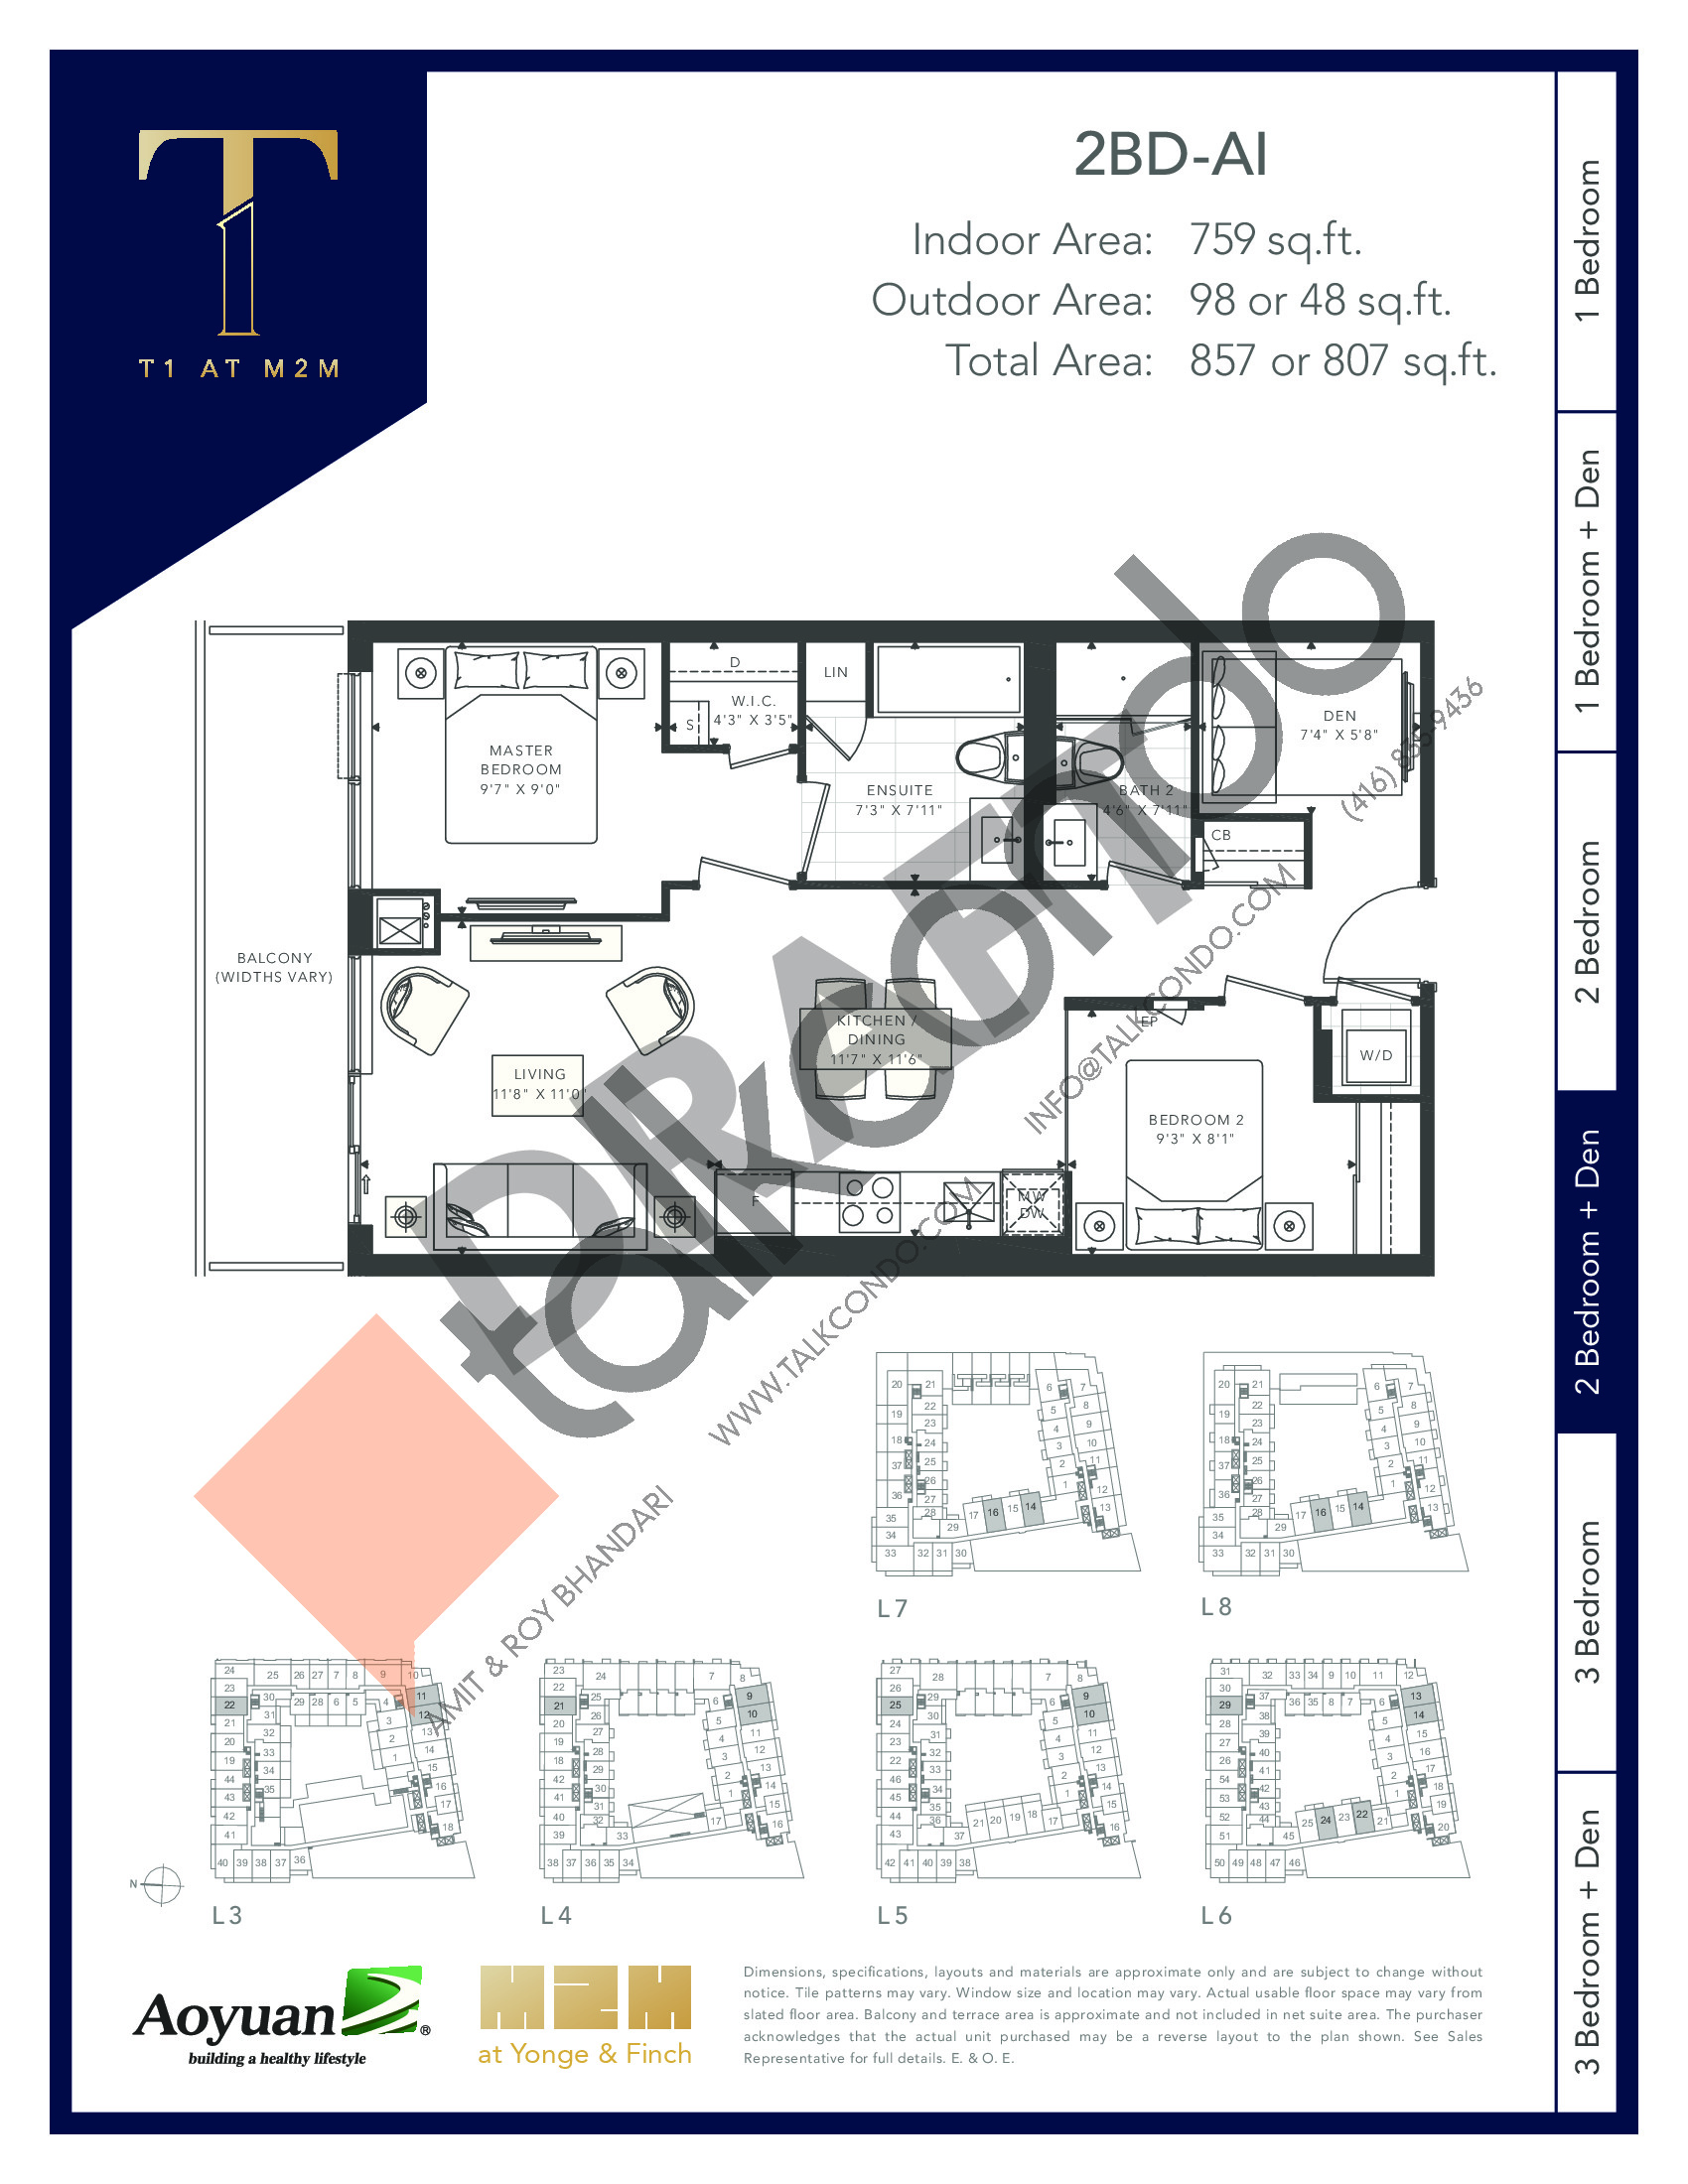 2BD-AI (Podium) Floor Plan at T1 at M2M Condos - 759 sq.ft